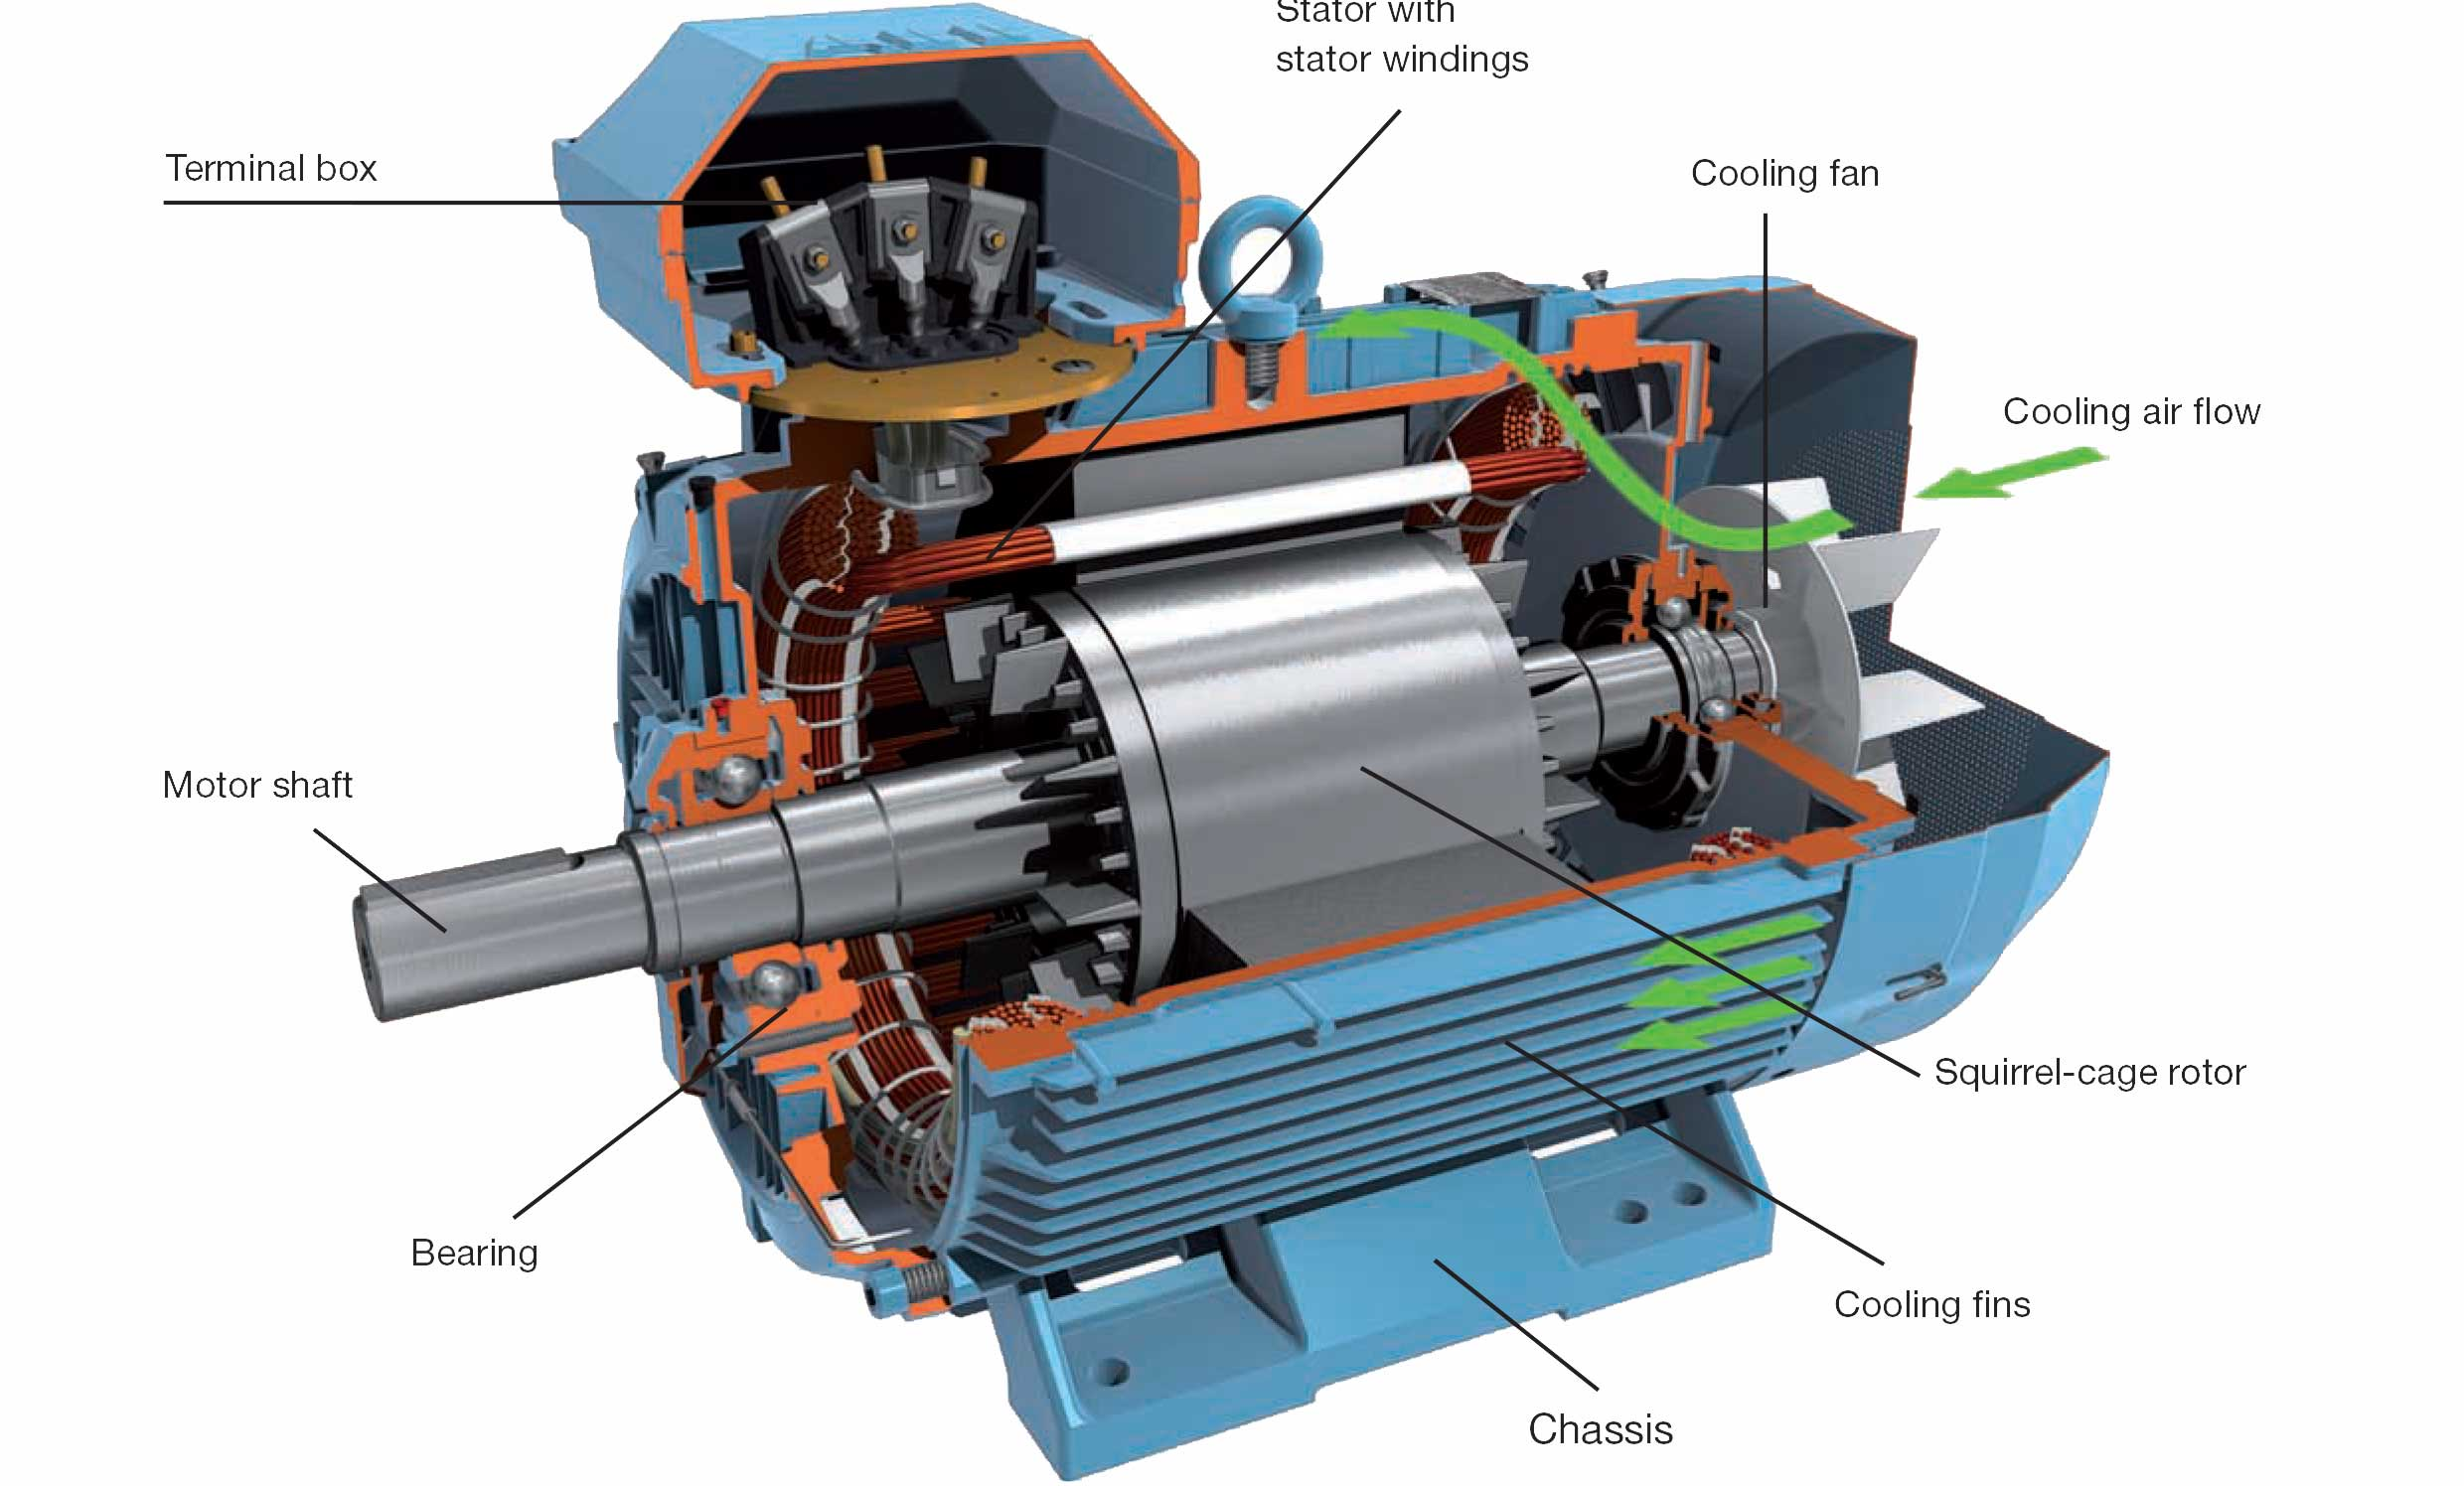 Abb Motors  U2013 Abb Motors Uae U2013 Abb Motor Distributor  U2013 Abb Motor Stockiest  U2013 Abb Motor Supplier